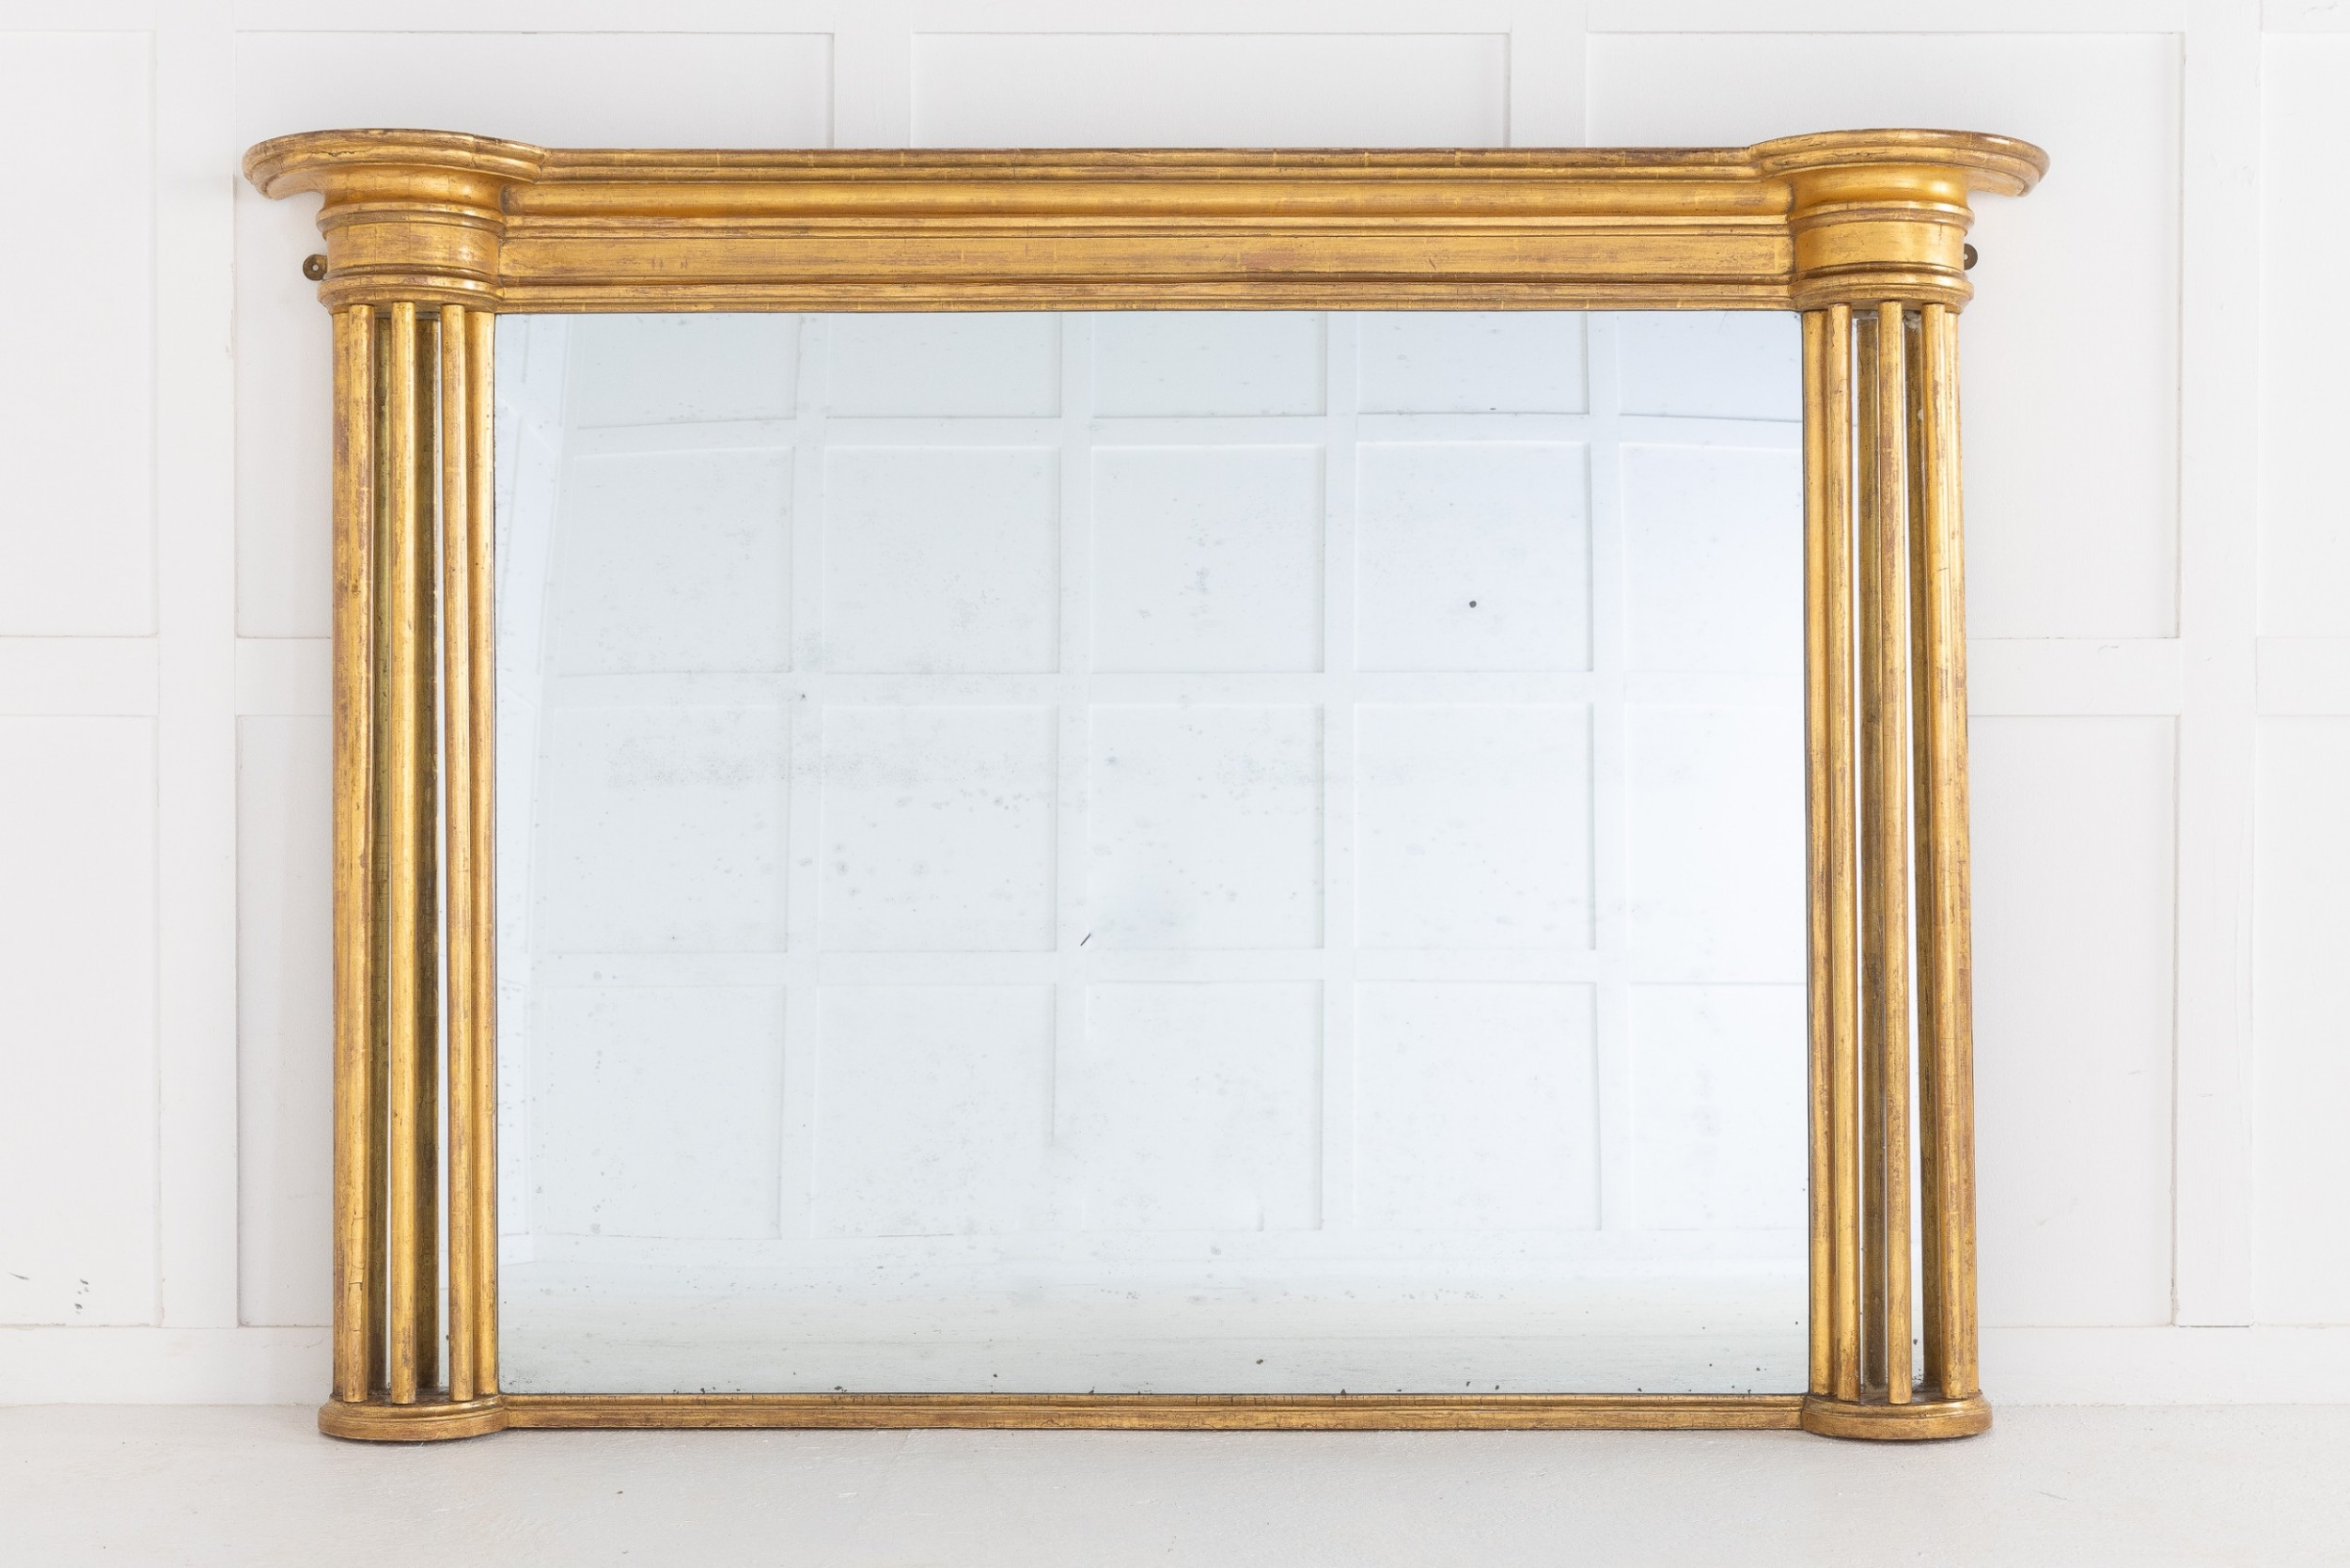 19th century regency giltwood overmantel mirror